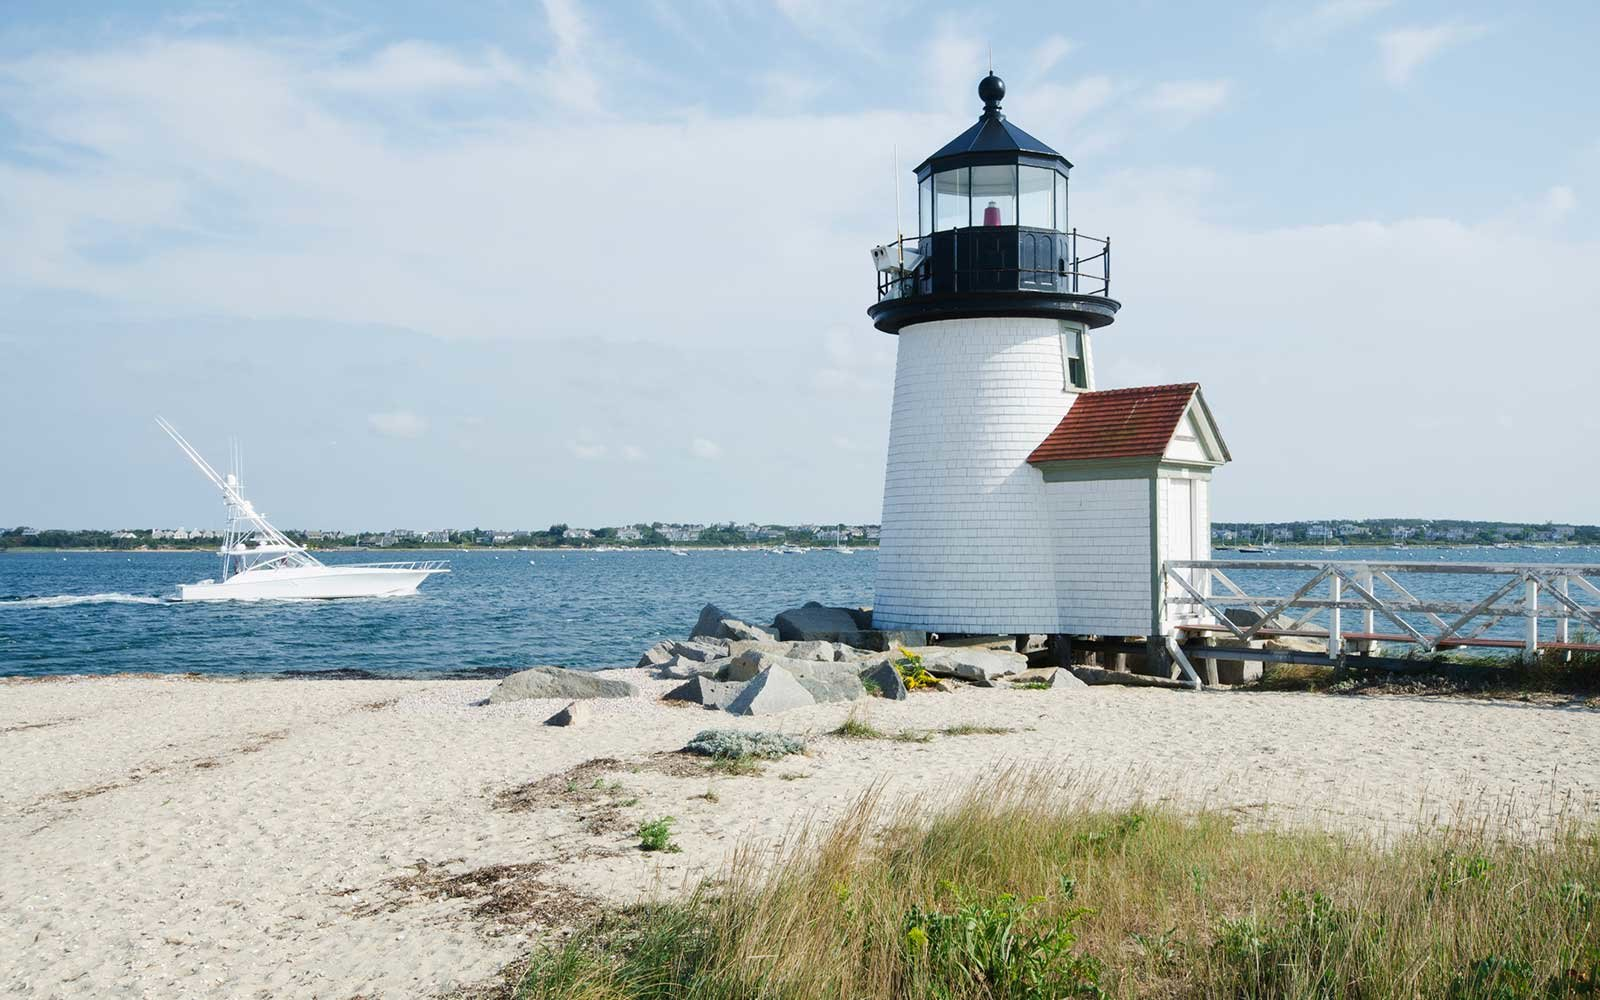 Brant Point Lighthouse, Nantucket Island, Massachusetts USA